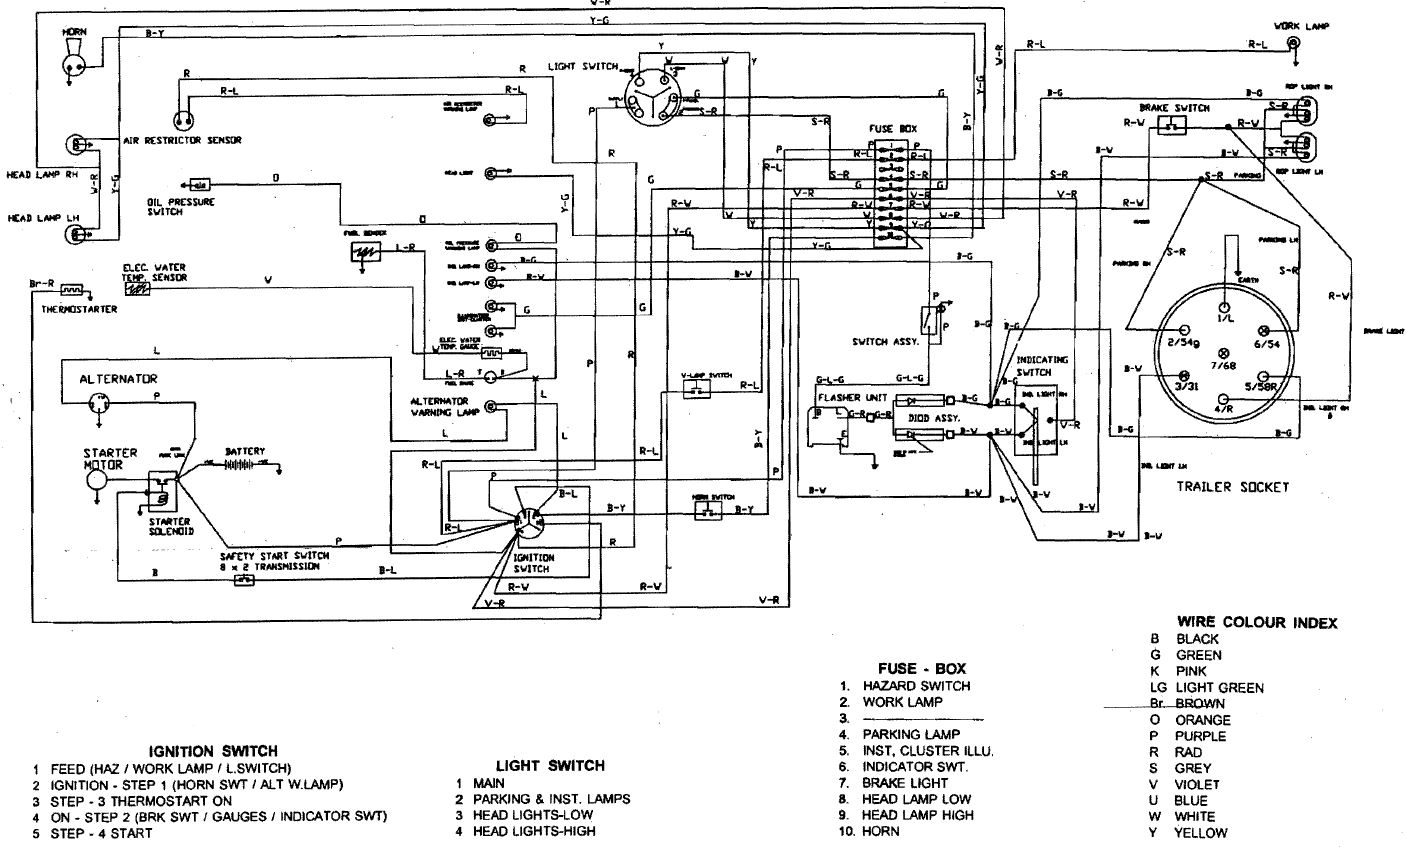 20158463319_b82d524c3d_o ignition switch wiring diagram john deere lawn mower wiring diagram at gsmportal.co